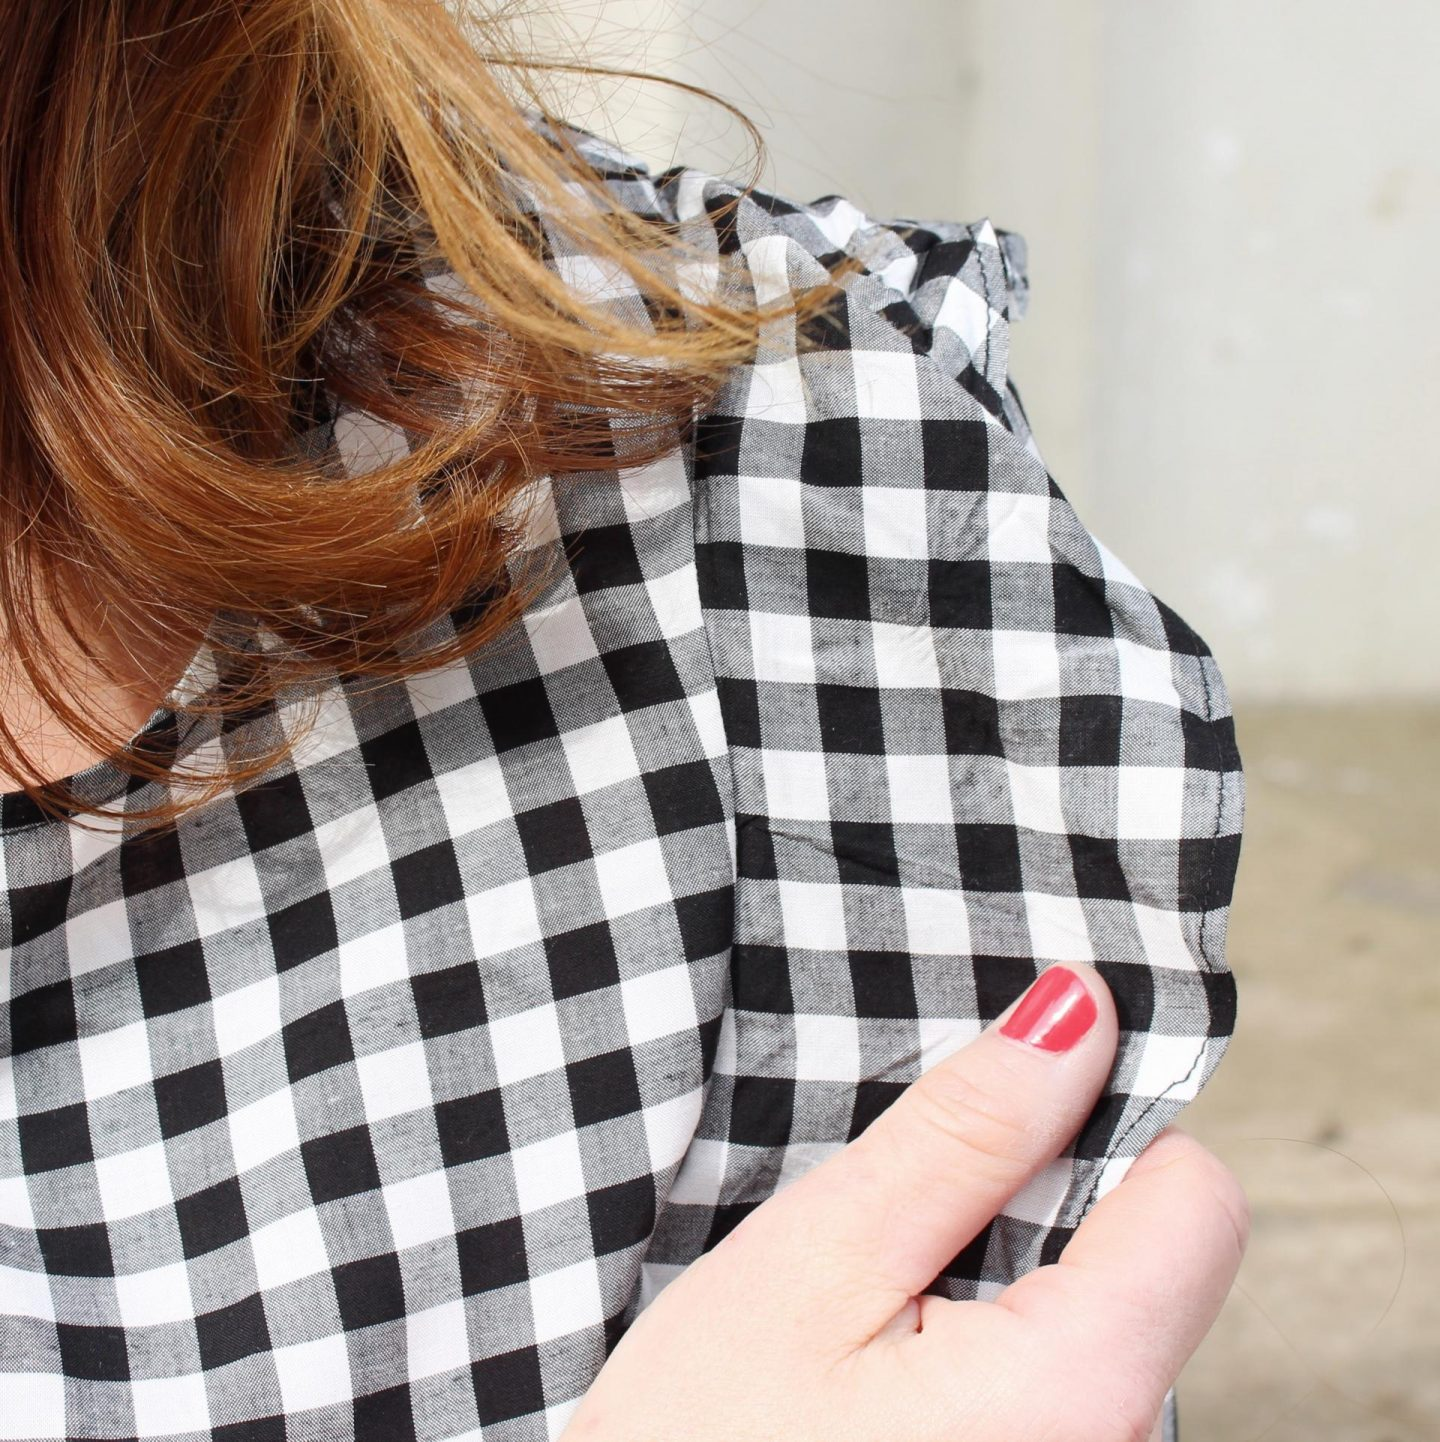 Stepping into Spring with Gingham and Ruffles